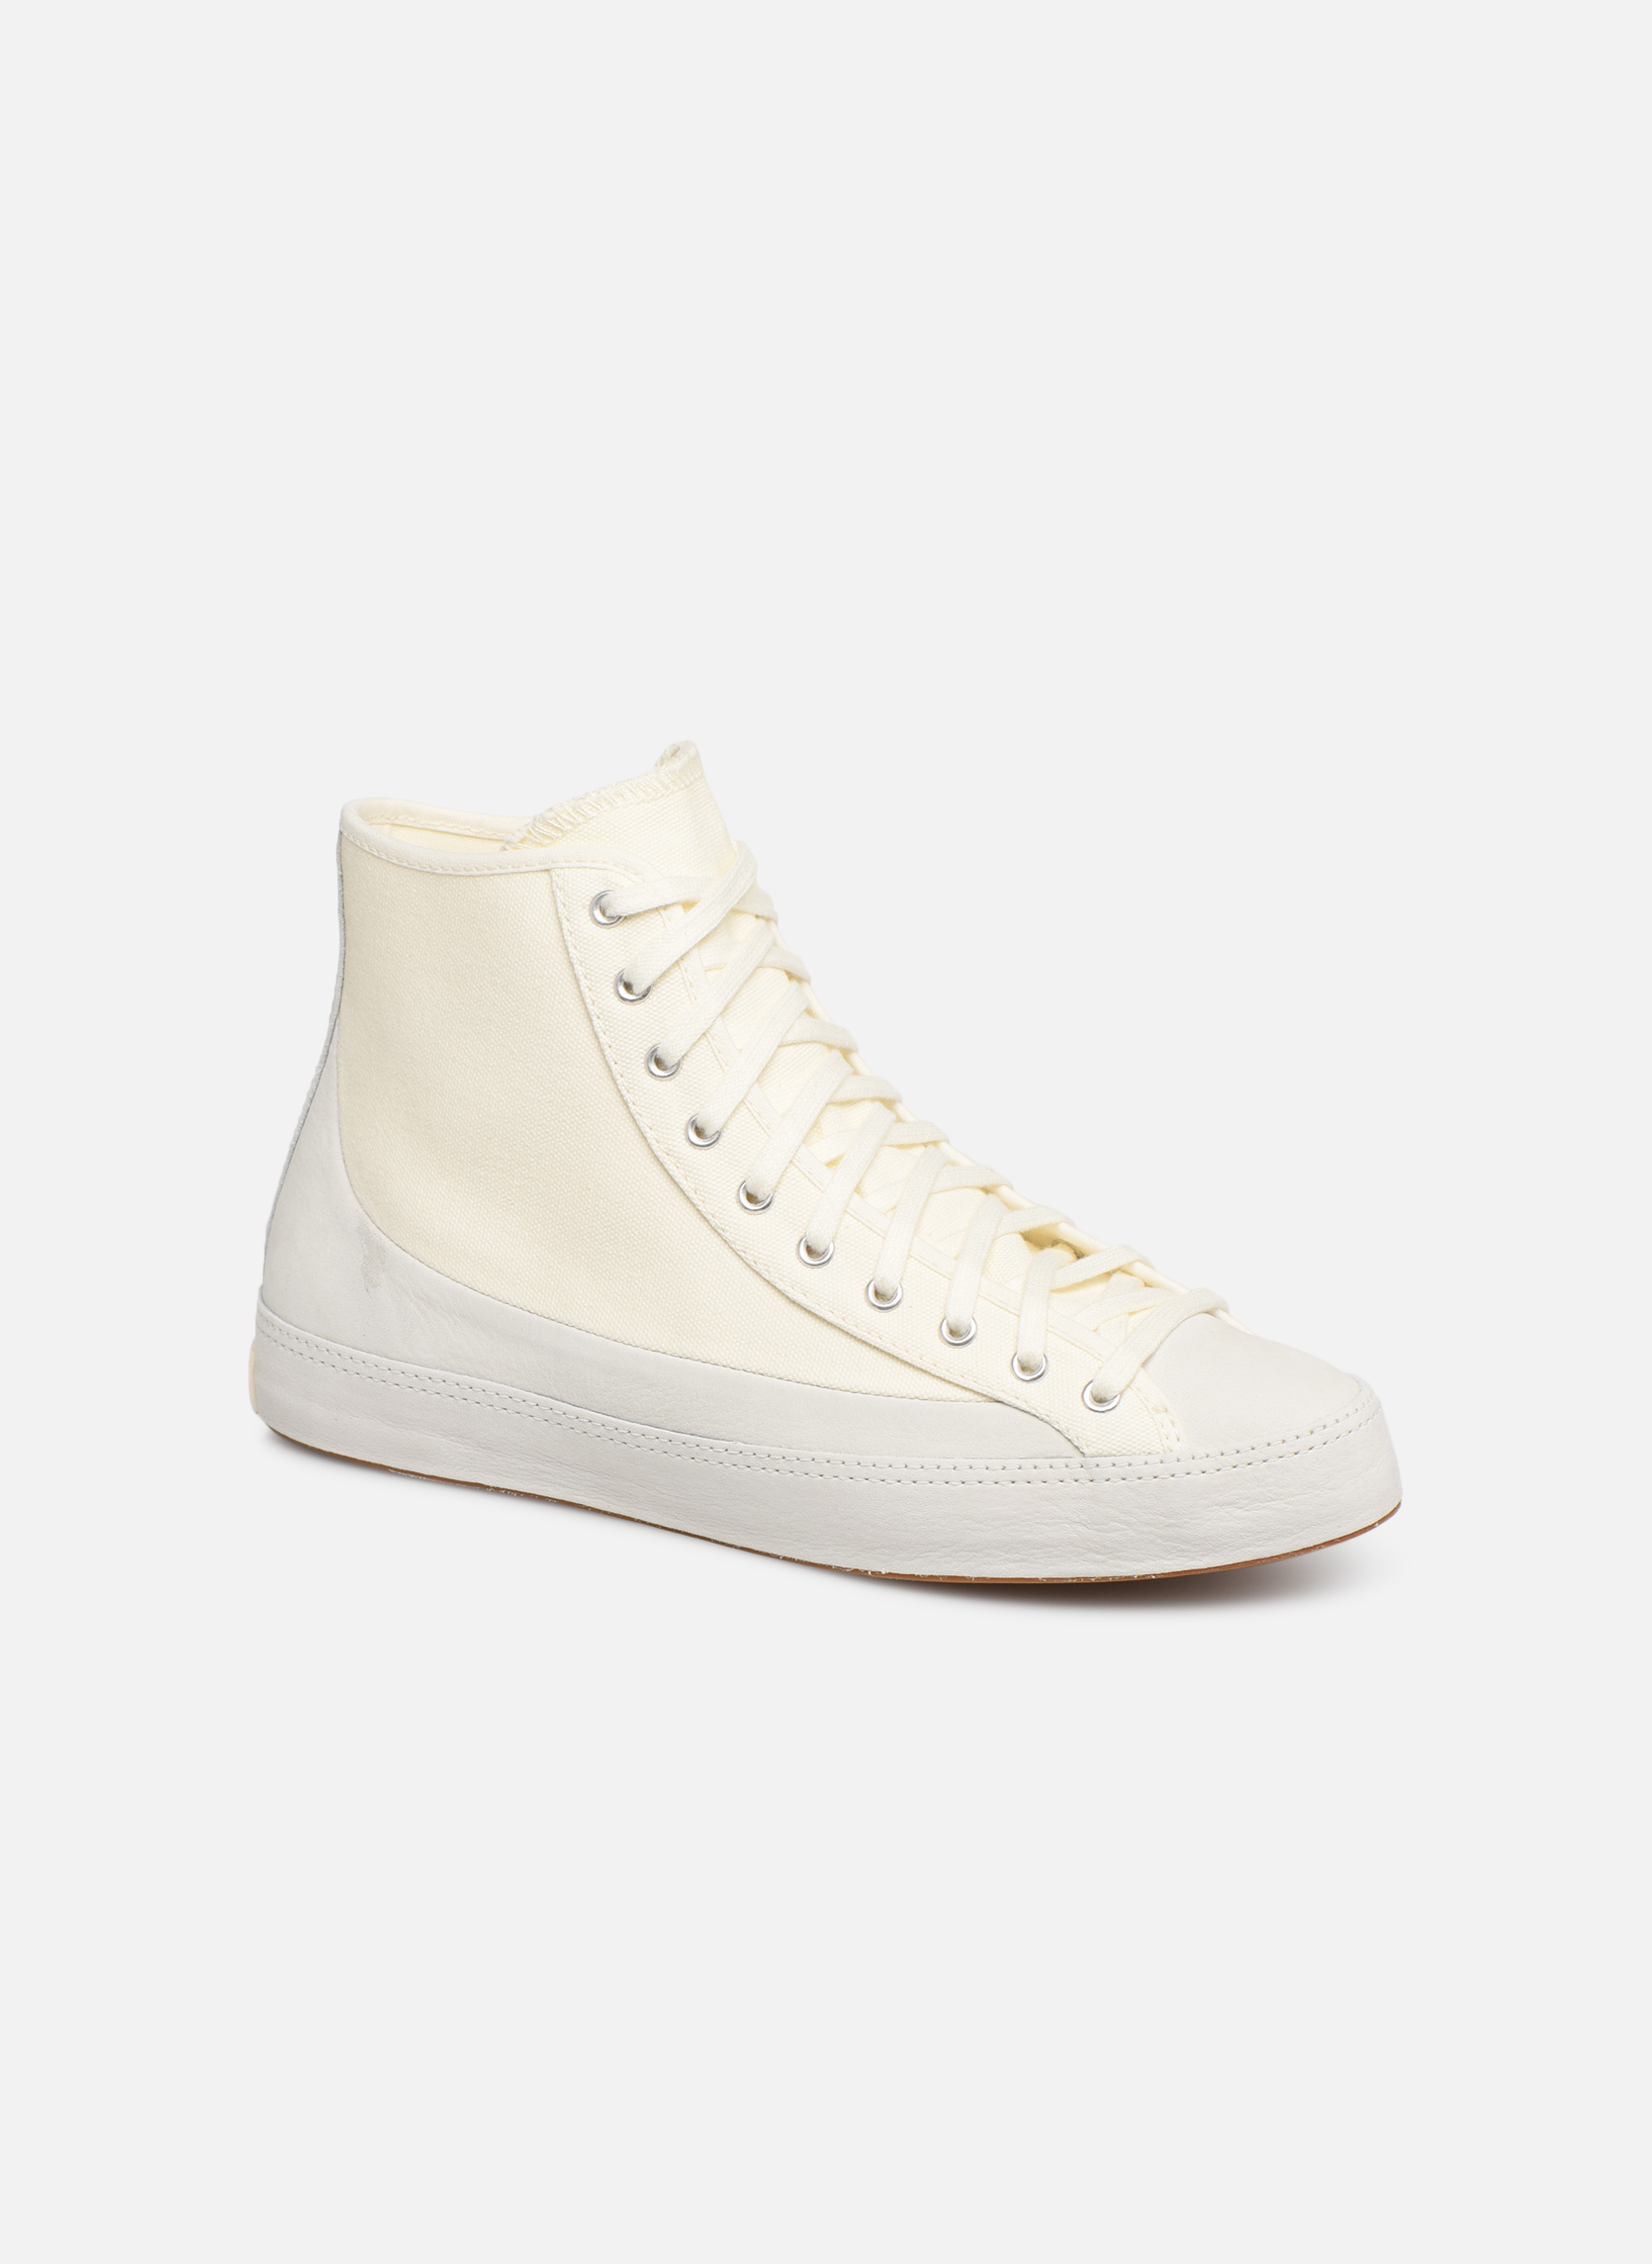 Sneakers Converse Sasha Bloom in Season Foundation Hi by ConverseConverseWitPaar schoenen - Sneakers88875651684241Textiel